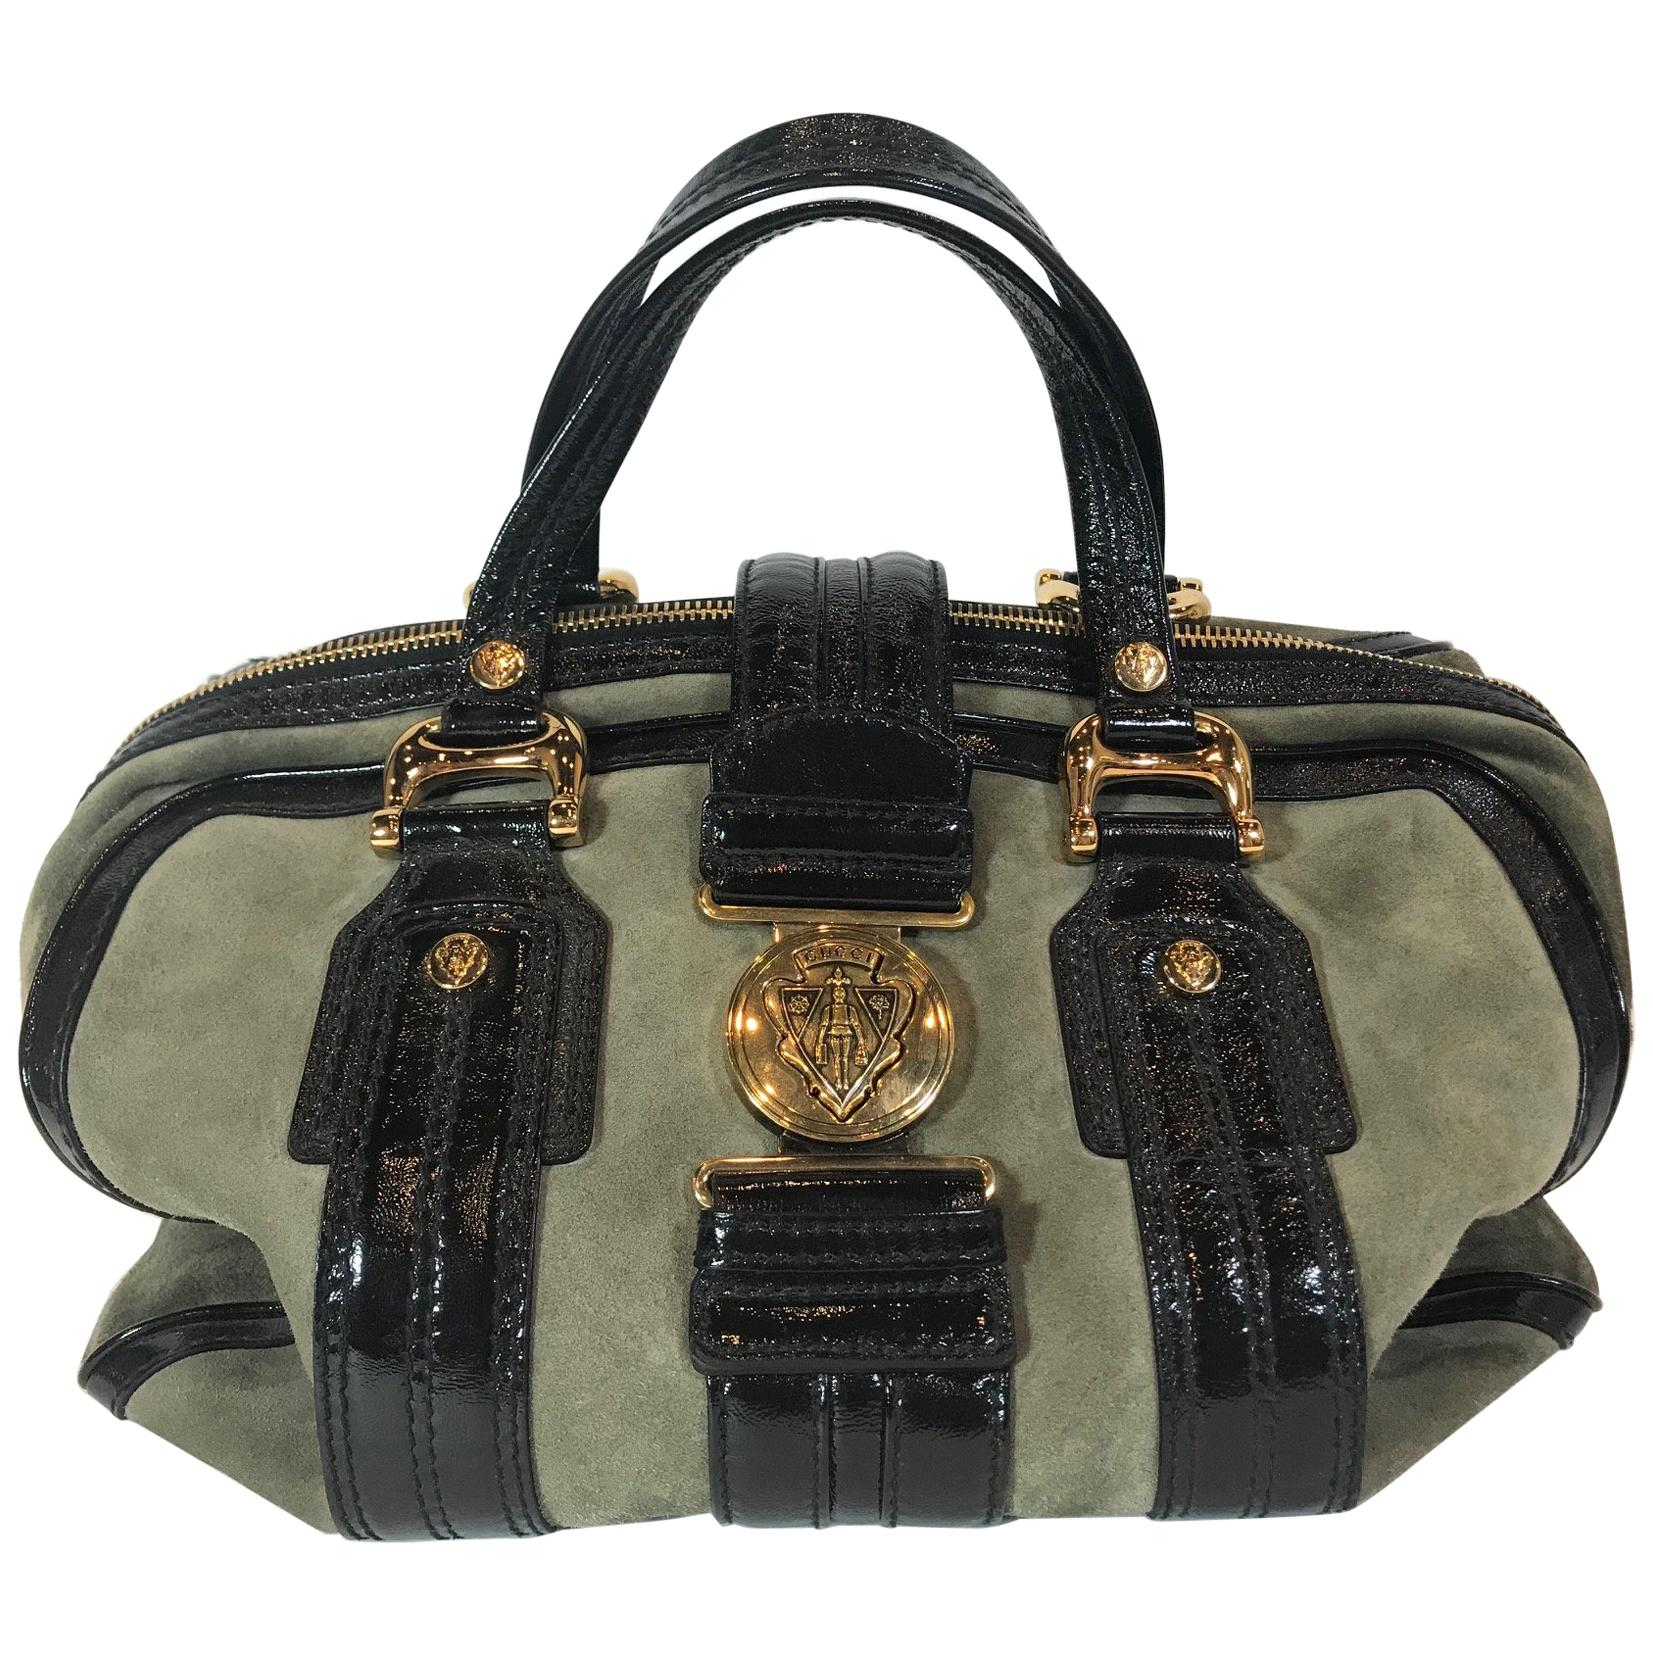 ebd108a34876cb Gucci Black/Khaki Patent Leather and Suede Aviatrix Boston Bag For Sale at  1stdibs